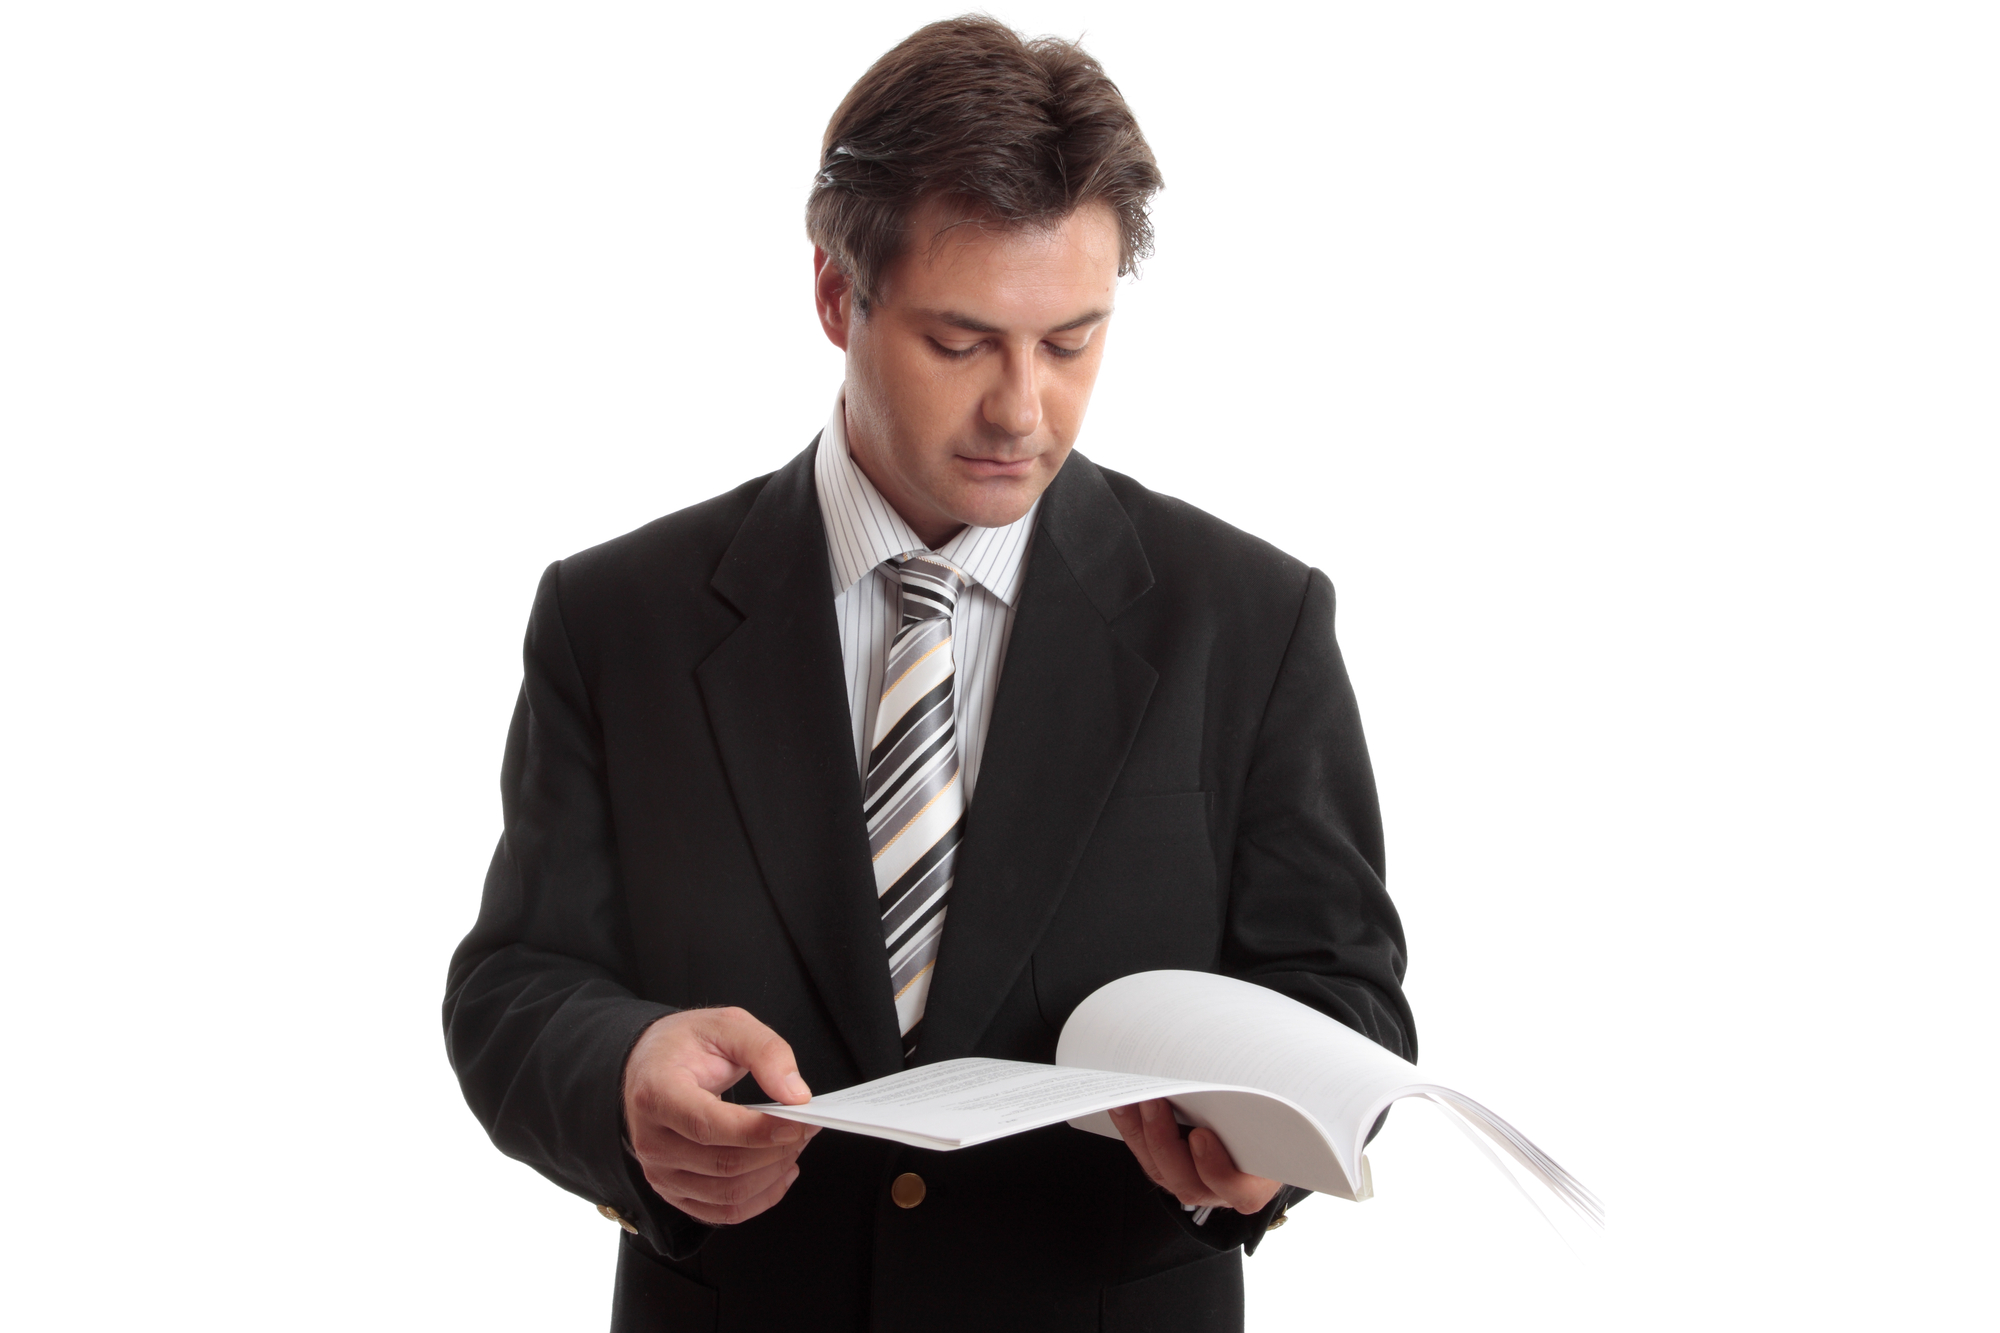 An individual in a suit and tie looks through a paper report.